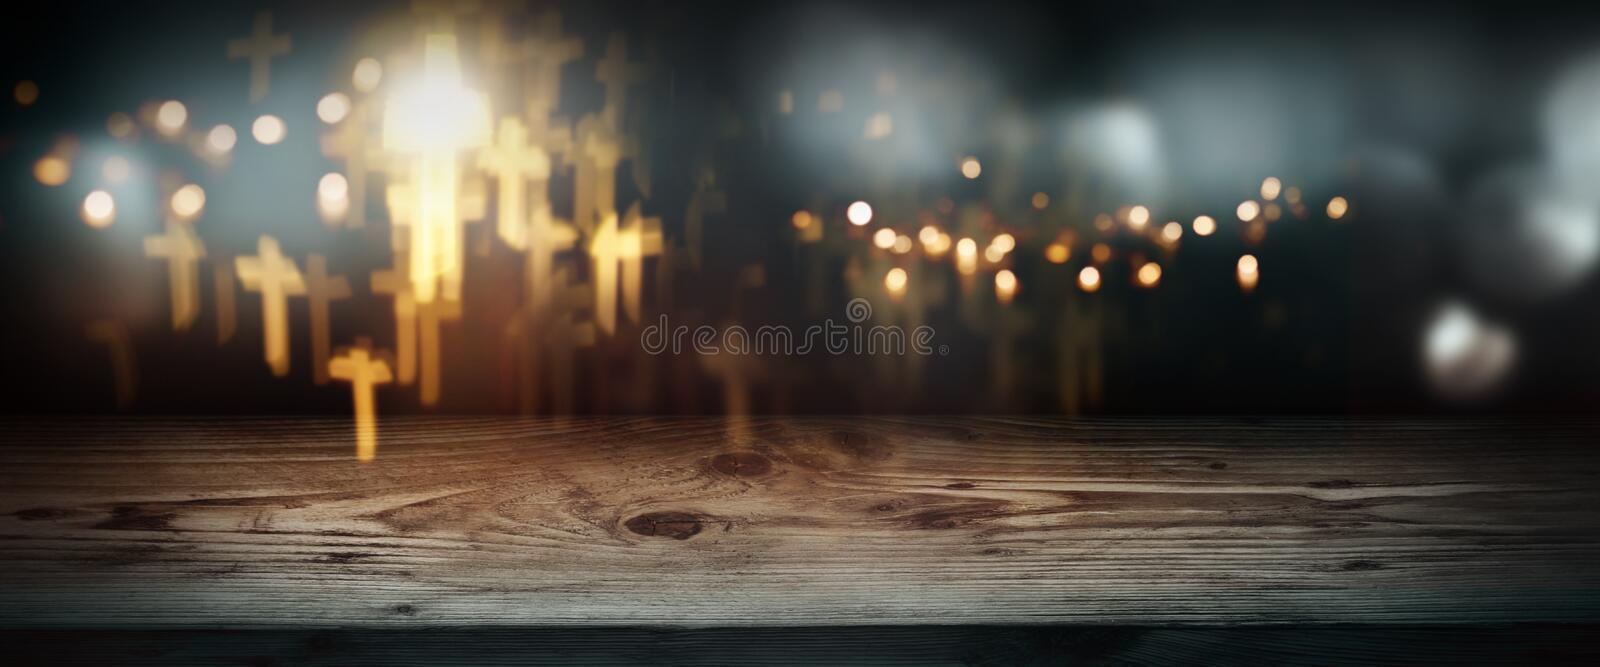 Halloween night with abstract crucifix and lights. In front of old wooden table for a decoration stock images